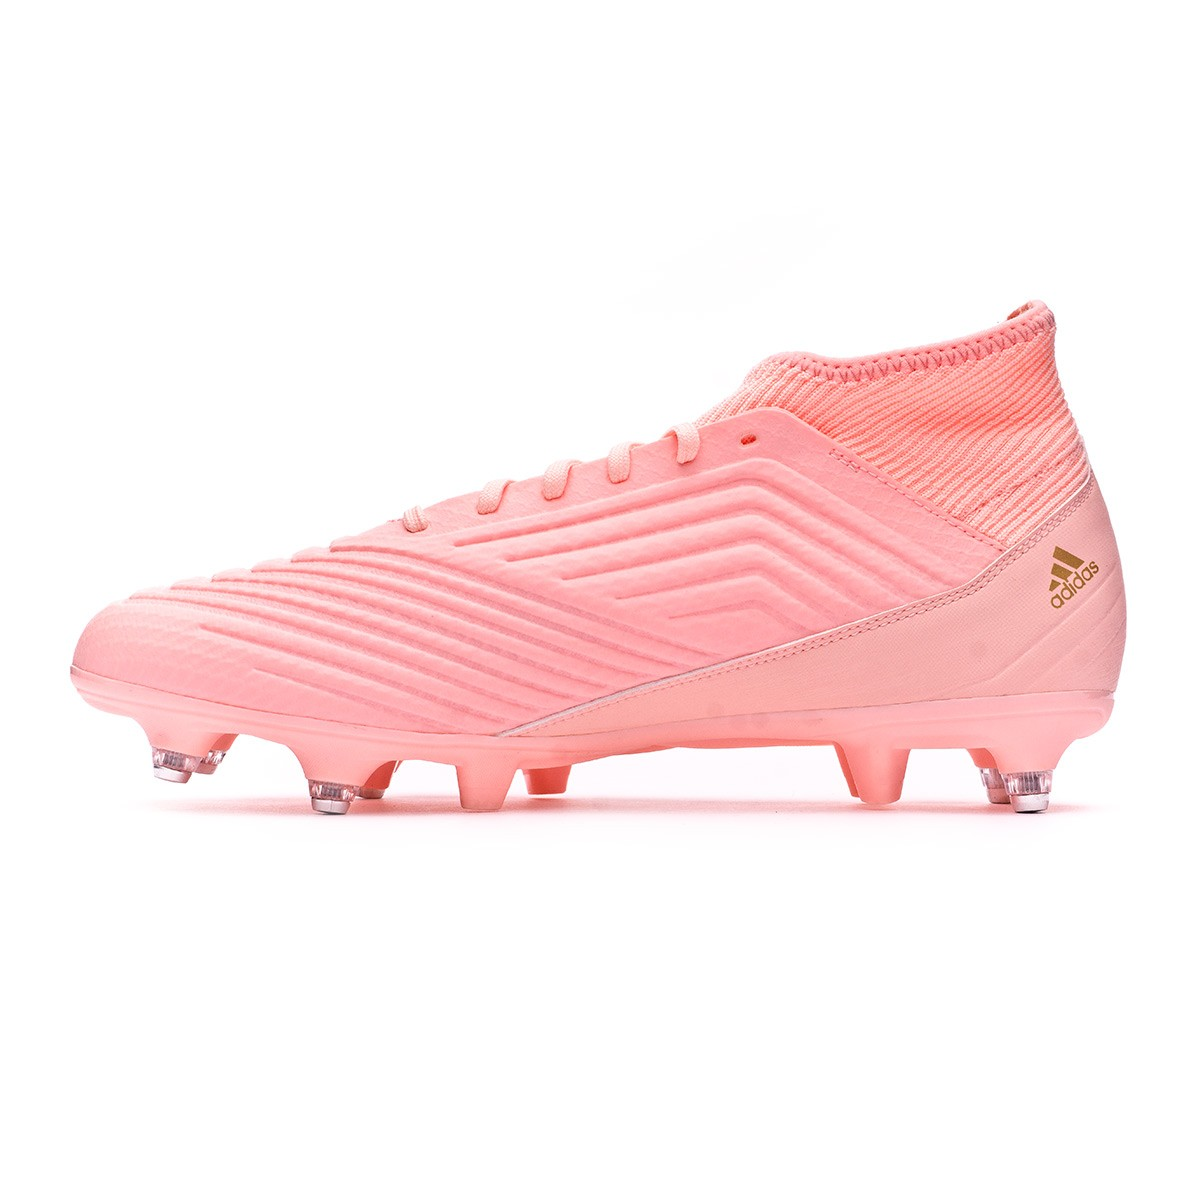 bf7f2b1e5529 Football Boots adidas Predator 18.3 SG Clear orange-Trace pink - Football  store Fútbol Emotion